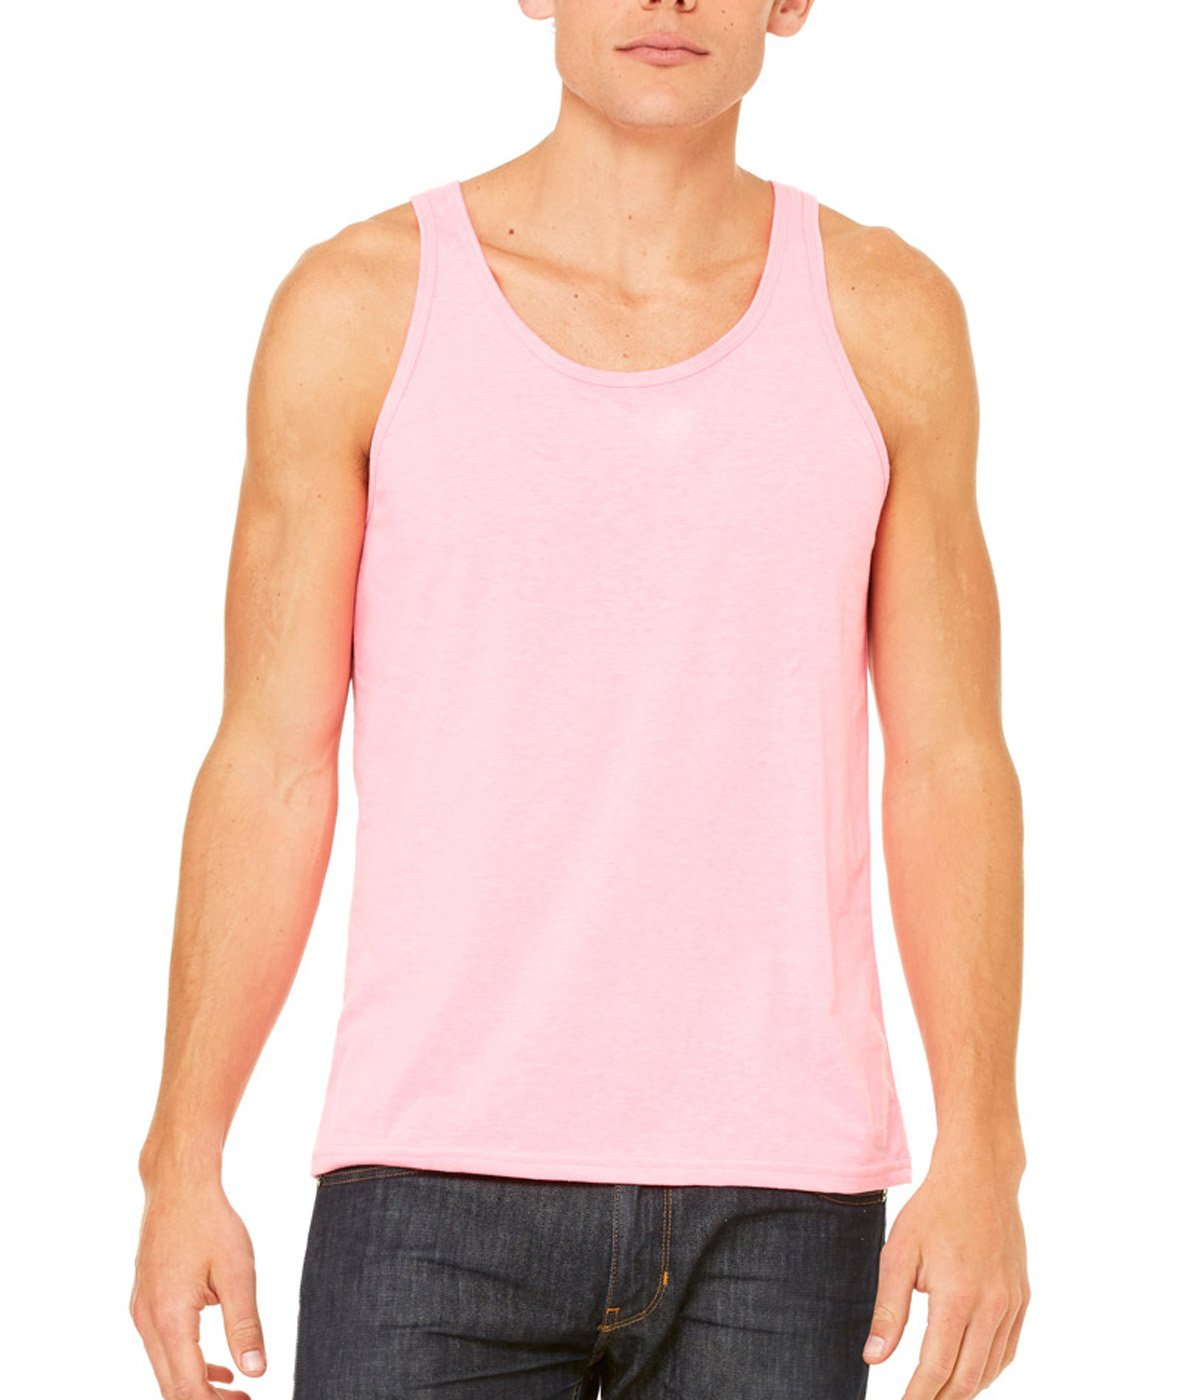 The Unisex Jersey Tank Bella Bella 3480